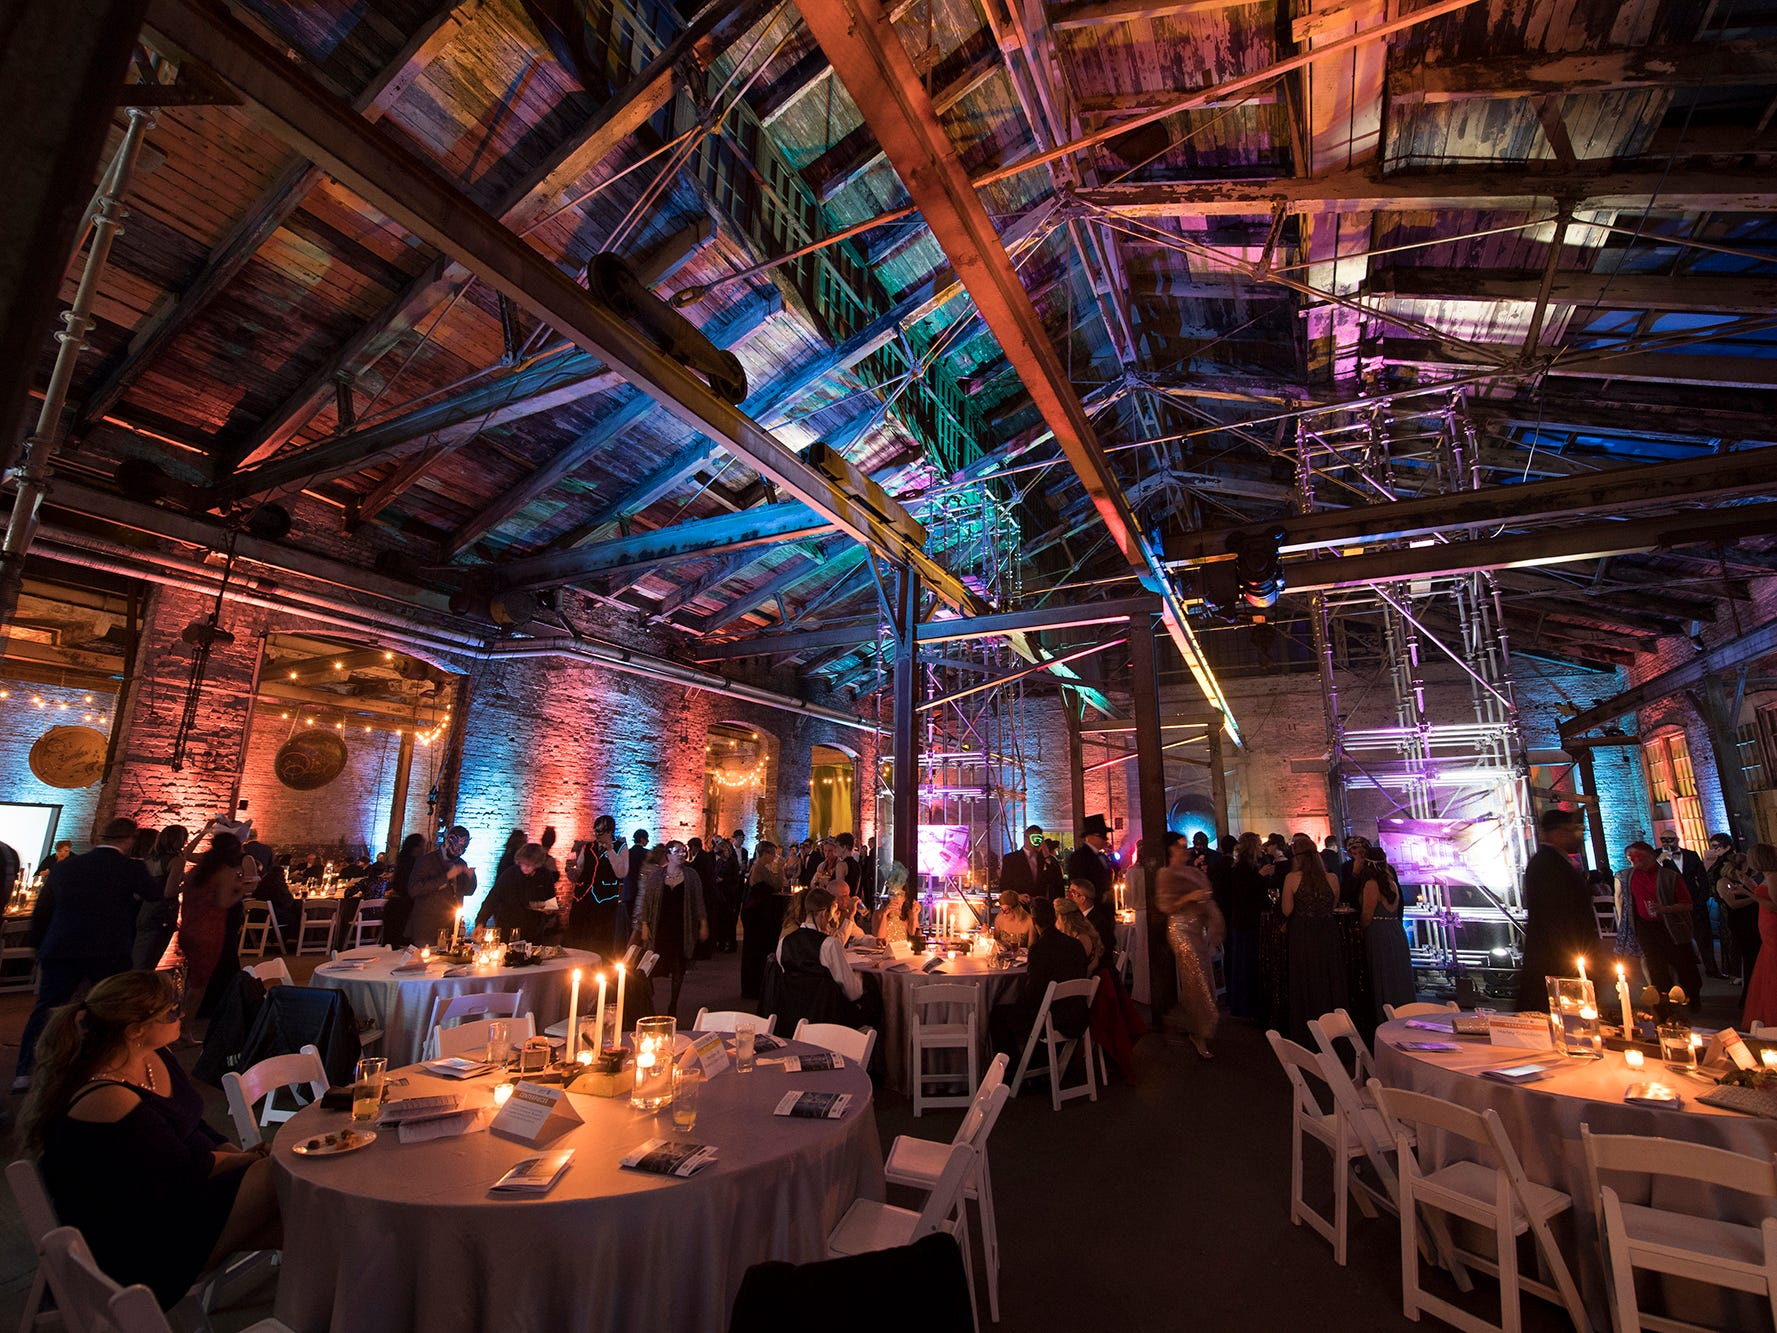 Downtown Inc.'s Fifth Annual Masquerade Ball was held at 145 N. Hartley Street Saturday, the site of the former Pewtarex Foundry and York Manufacturing Company's ice-machine making plant.